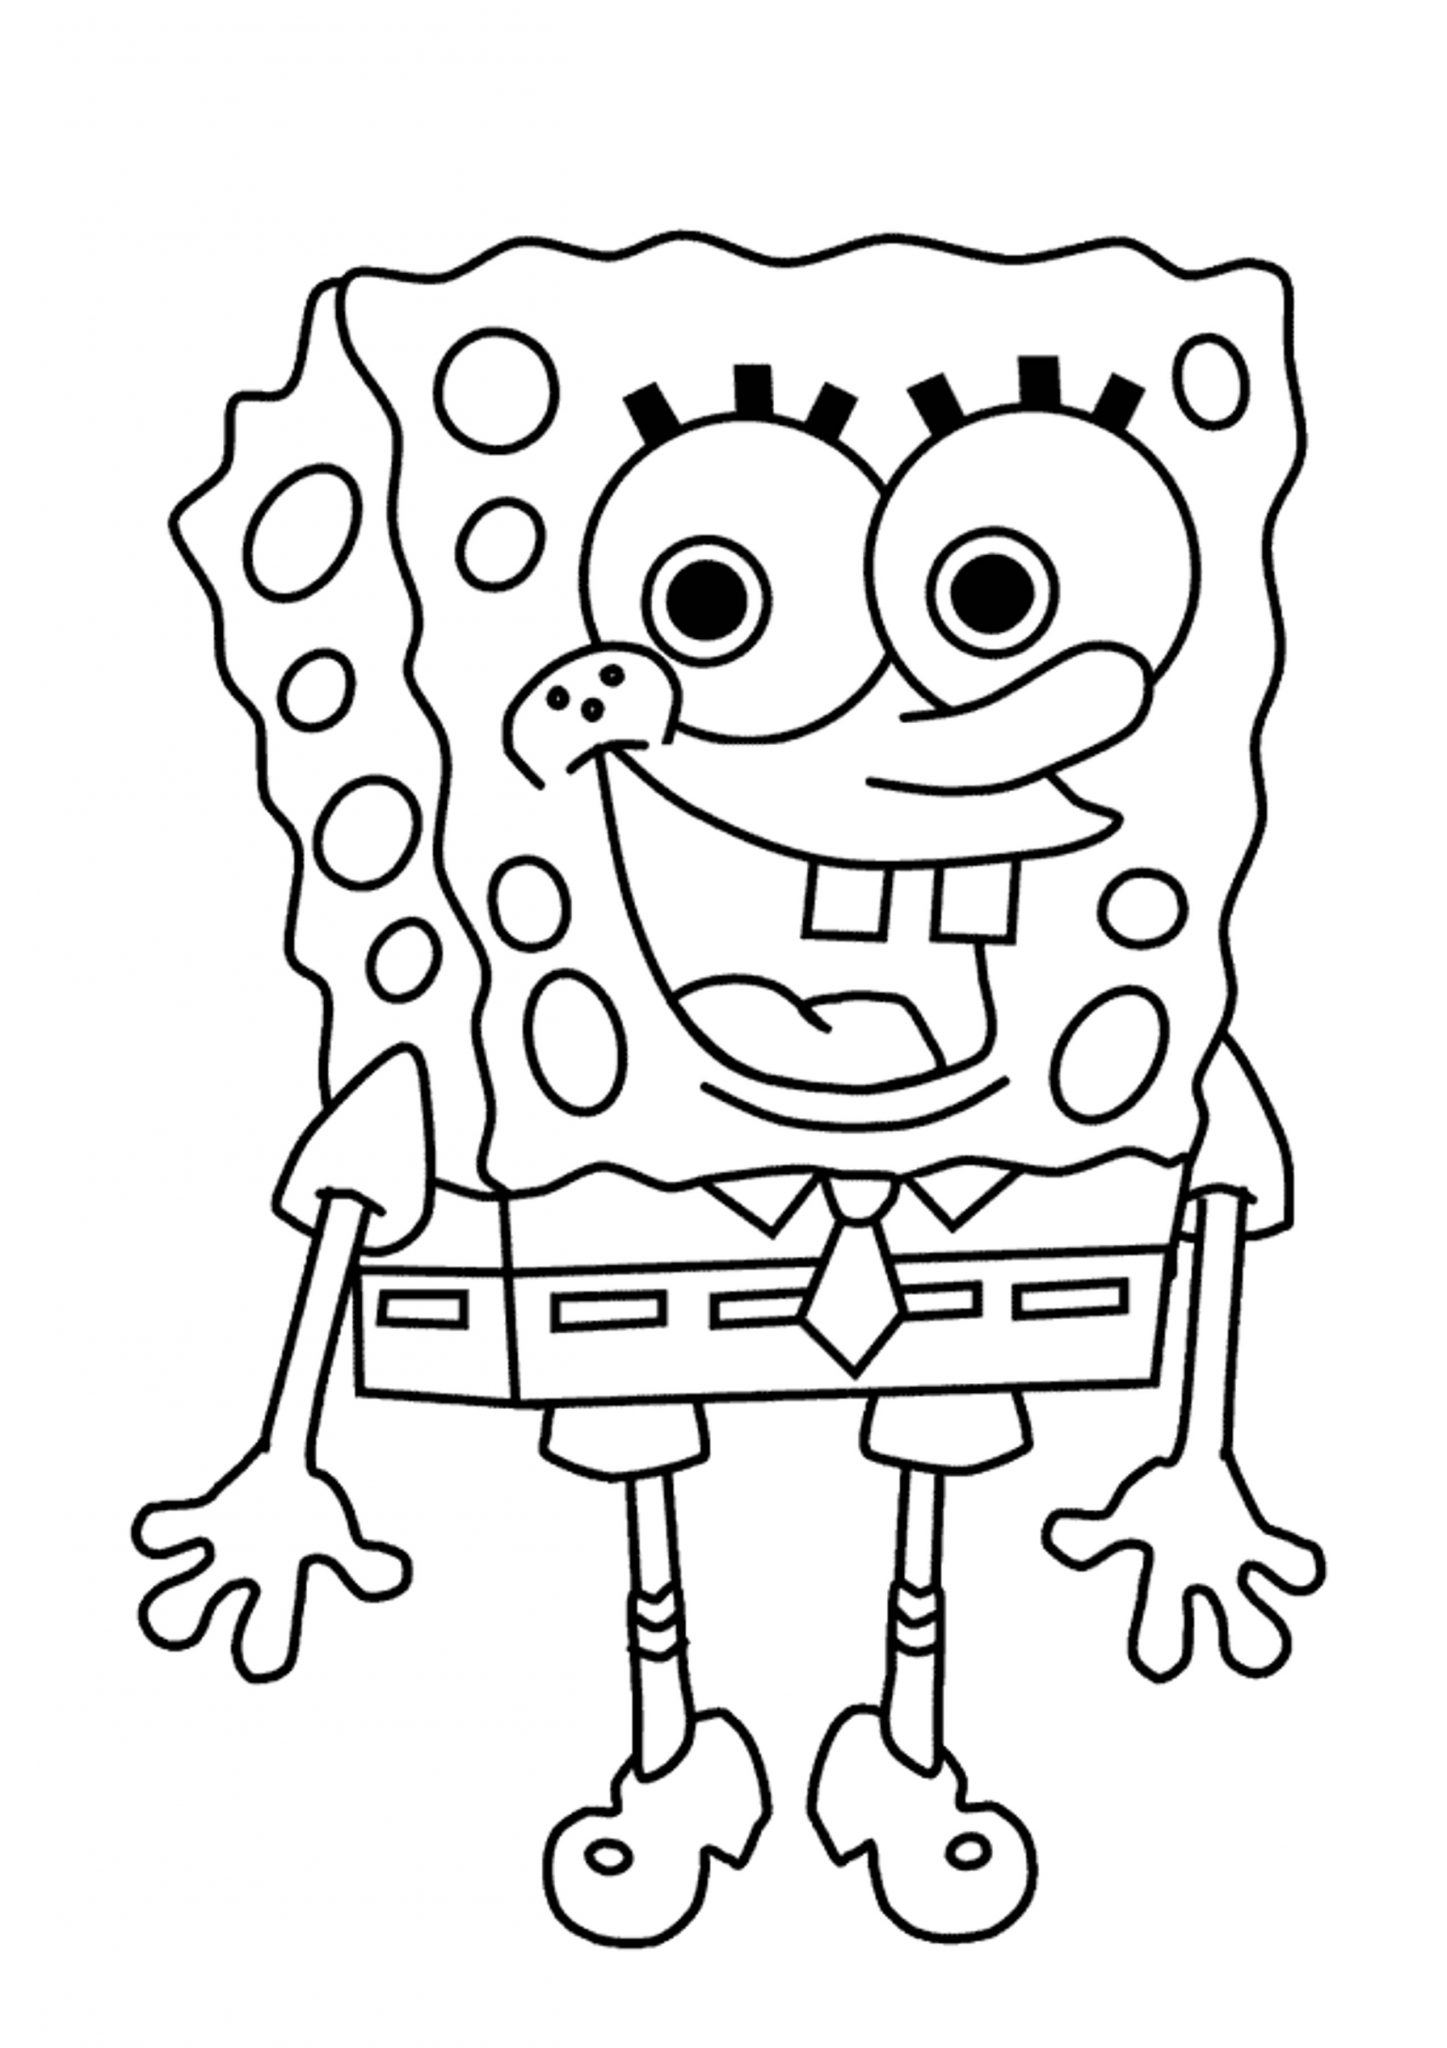 baby spongebob squarepants coloring pages eliolera com